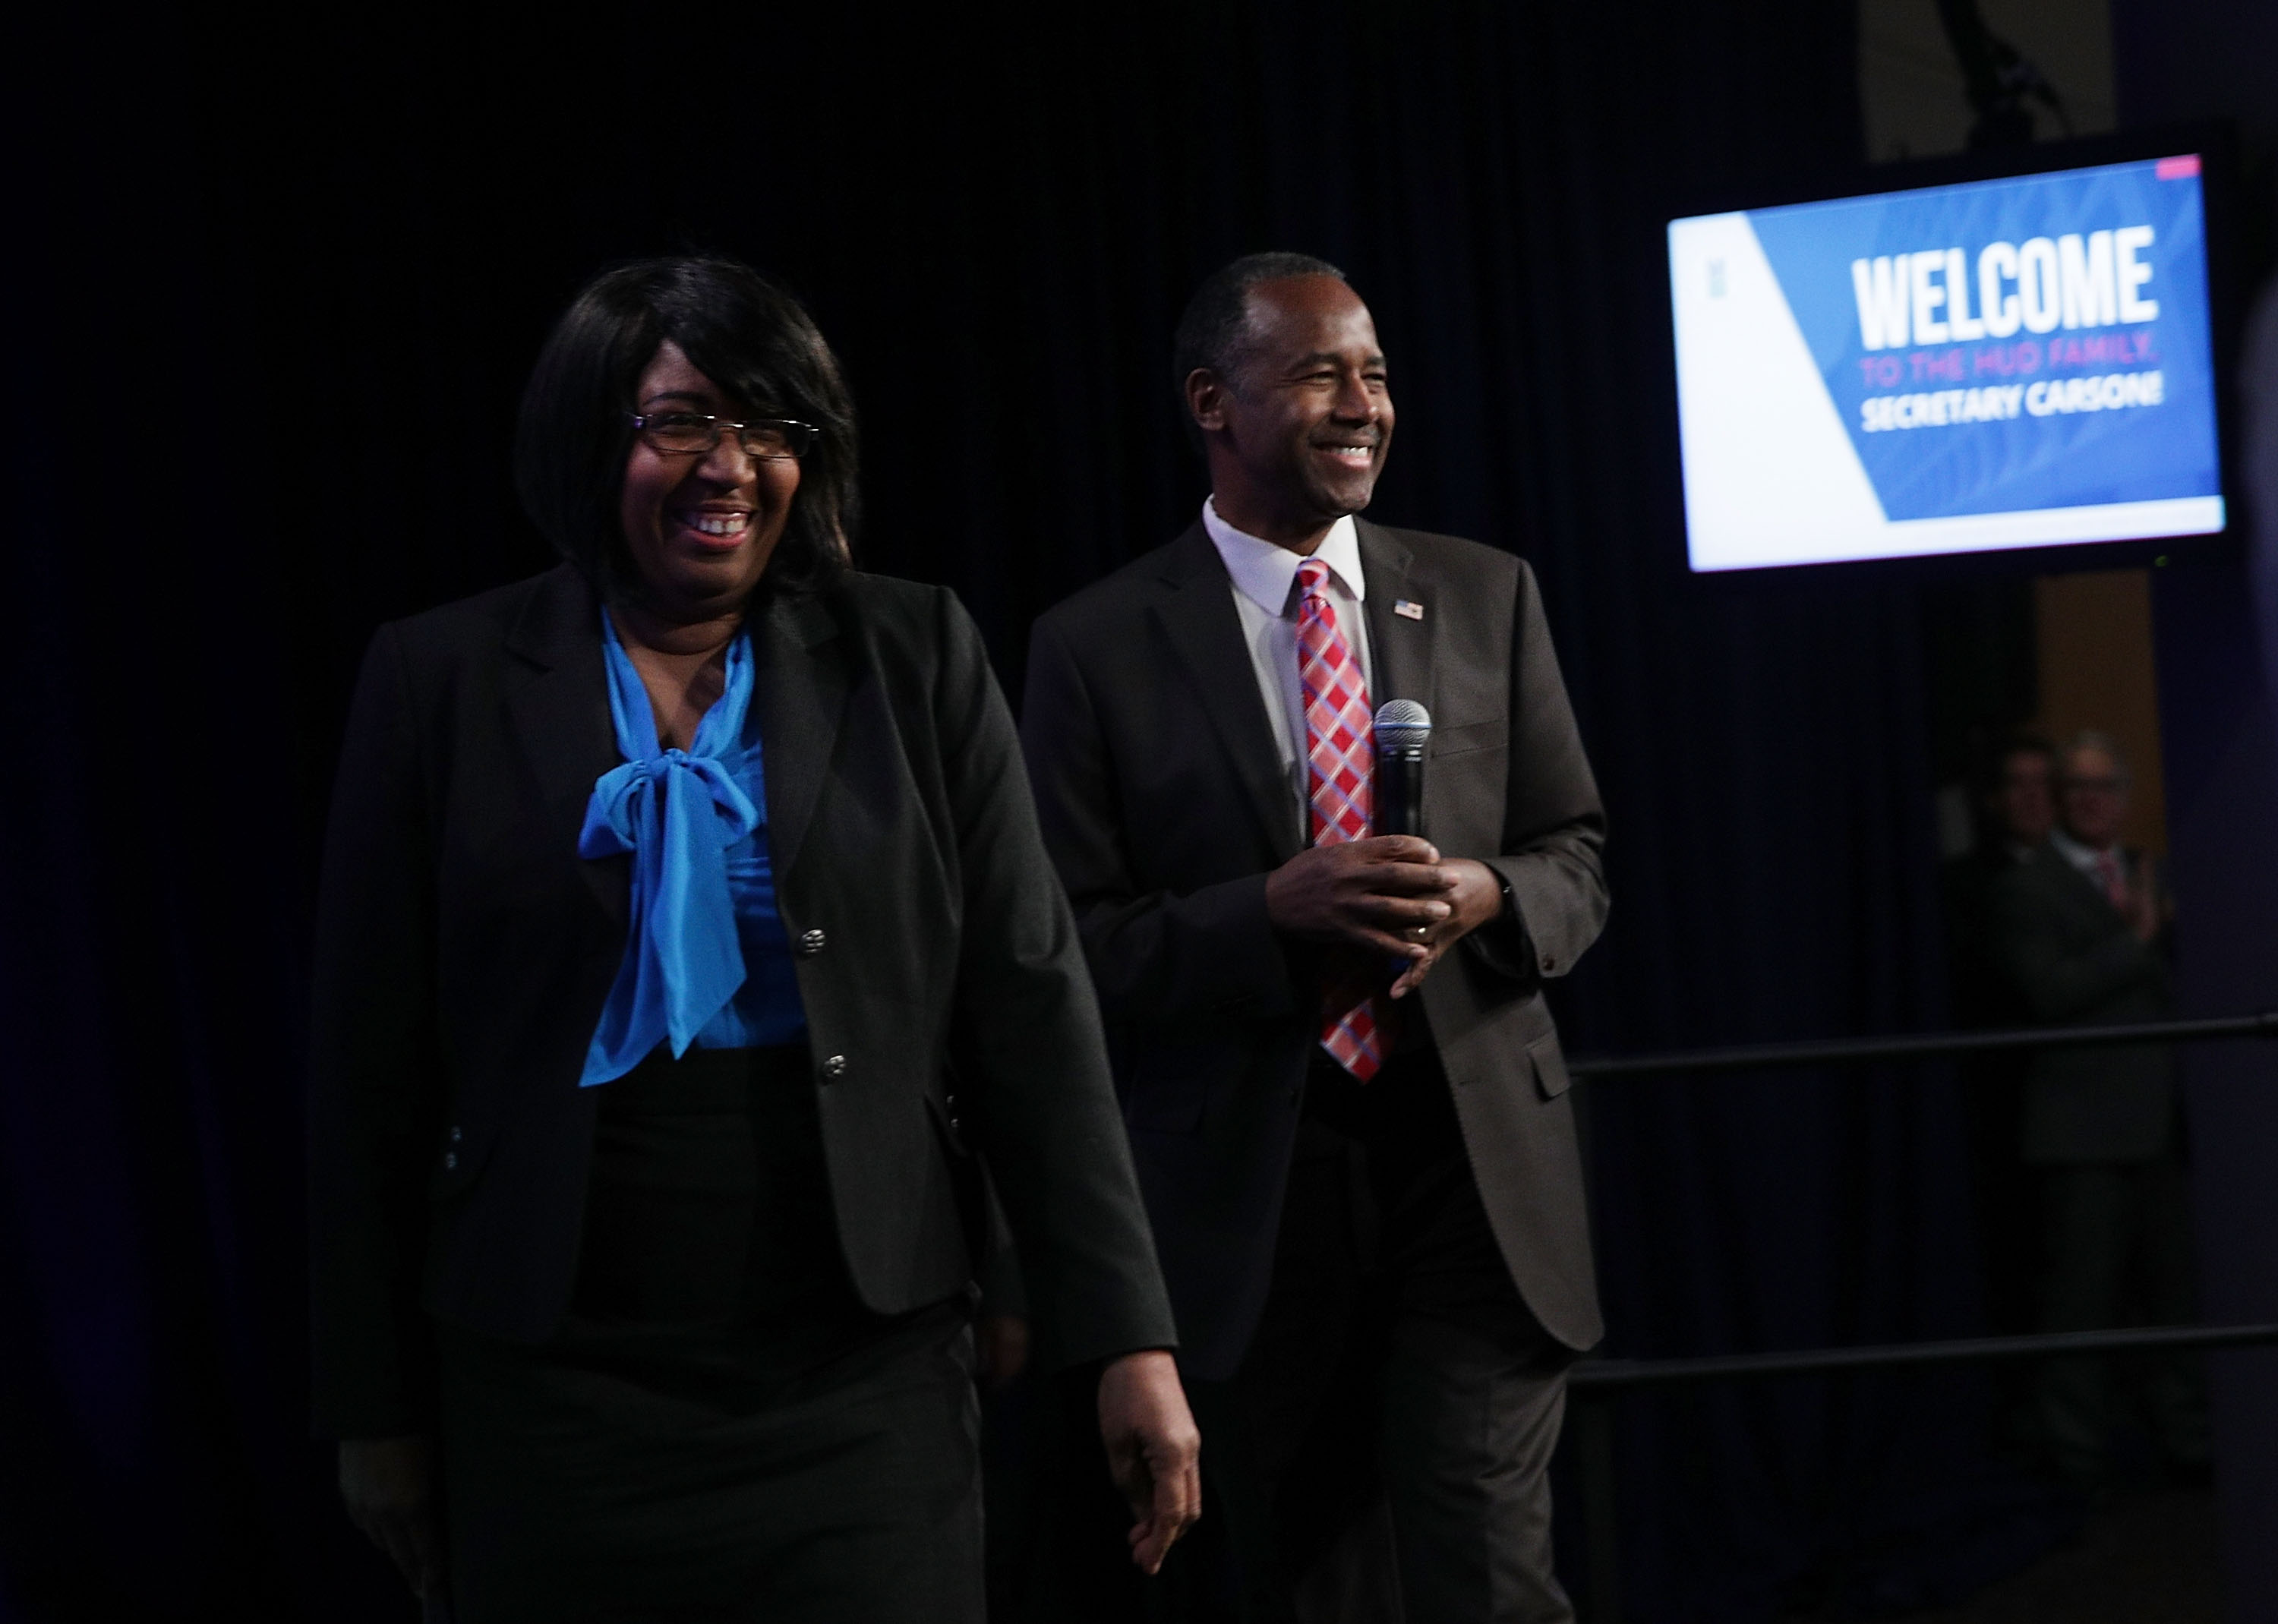 U.S. Housing and Urban Development (HUD) Secretary Ben Carson and his wife Candy Carson walk on stage prior to his address to his employees March 6, 2017 in Washington, DC.